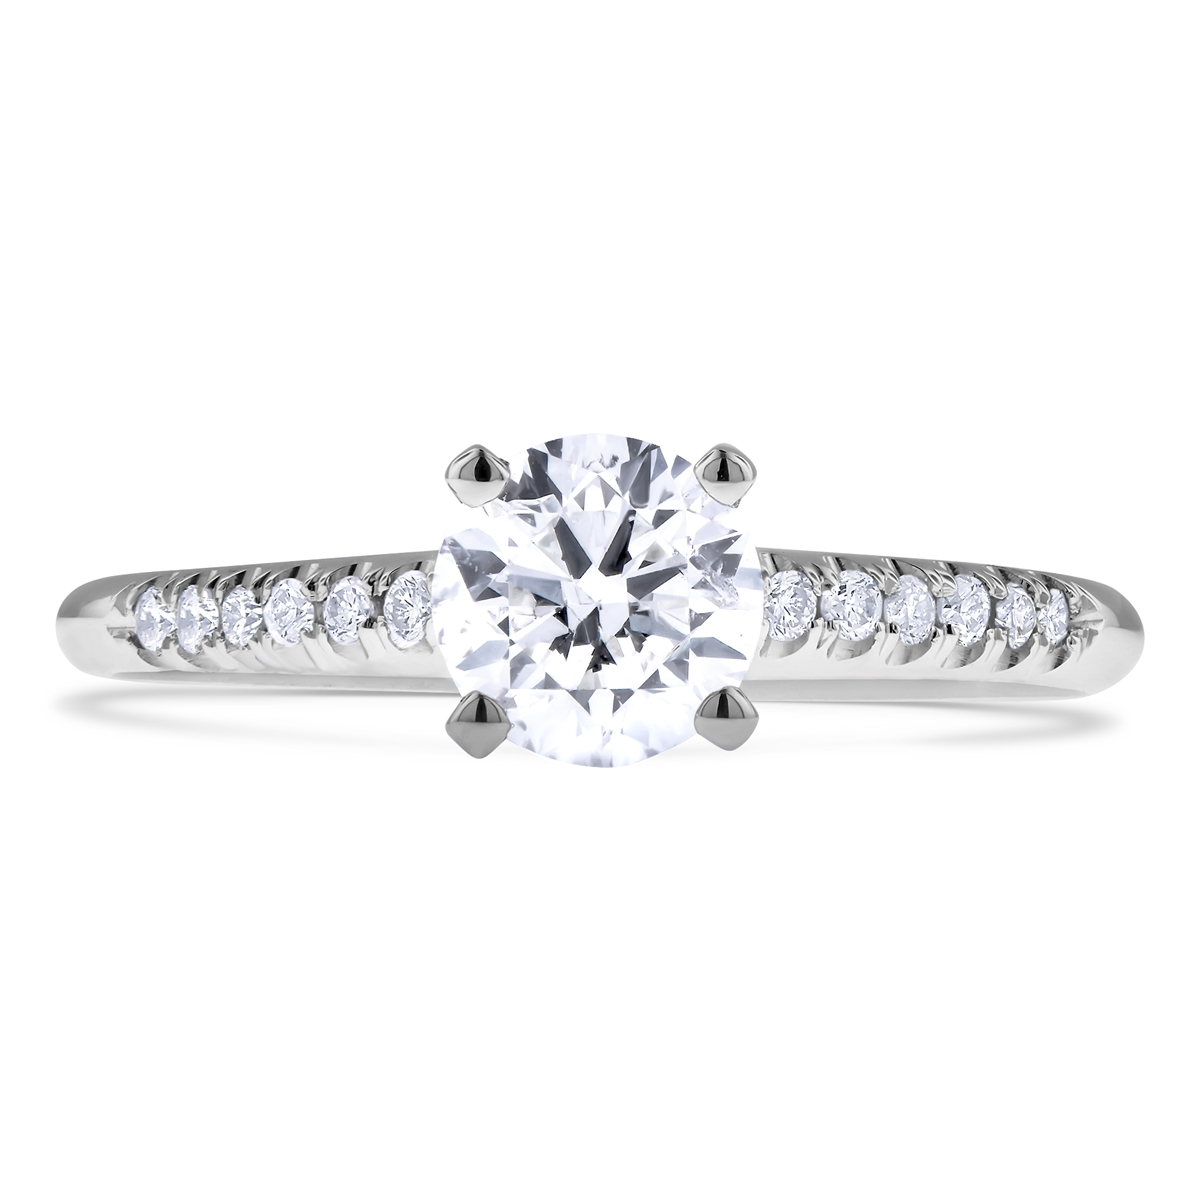 enr gold round four a engagement rings flush set pave band white edge brilliant platinum prong solitaire ring knife in